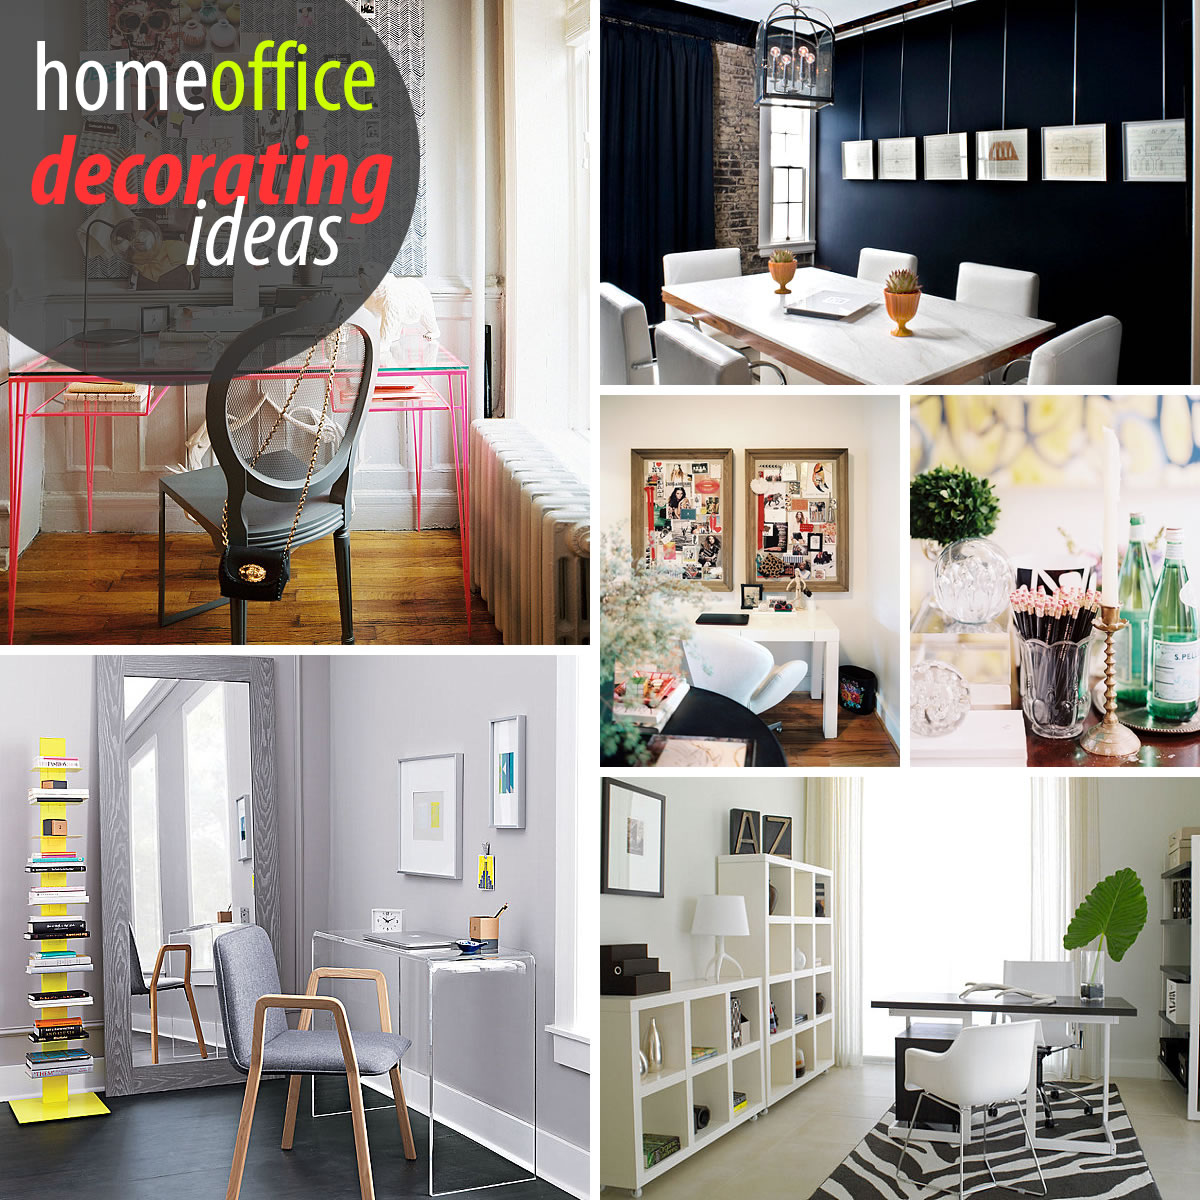 Popular Who Says That A Home Office Must Be All Work And No Play?! Quite The Contrary! In Fact, When It Comes To Home Office Spaces, The Most Memorable Of These Rooms Inject A Dose Of Creativity, Reflecting The Personalities Of Their Occupants